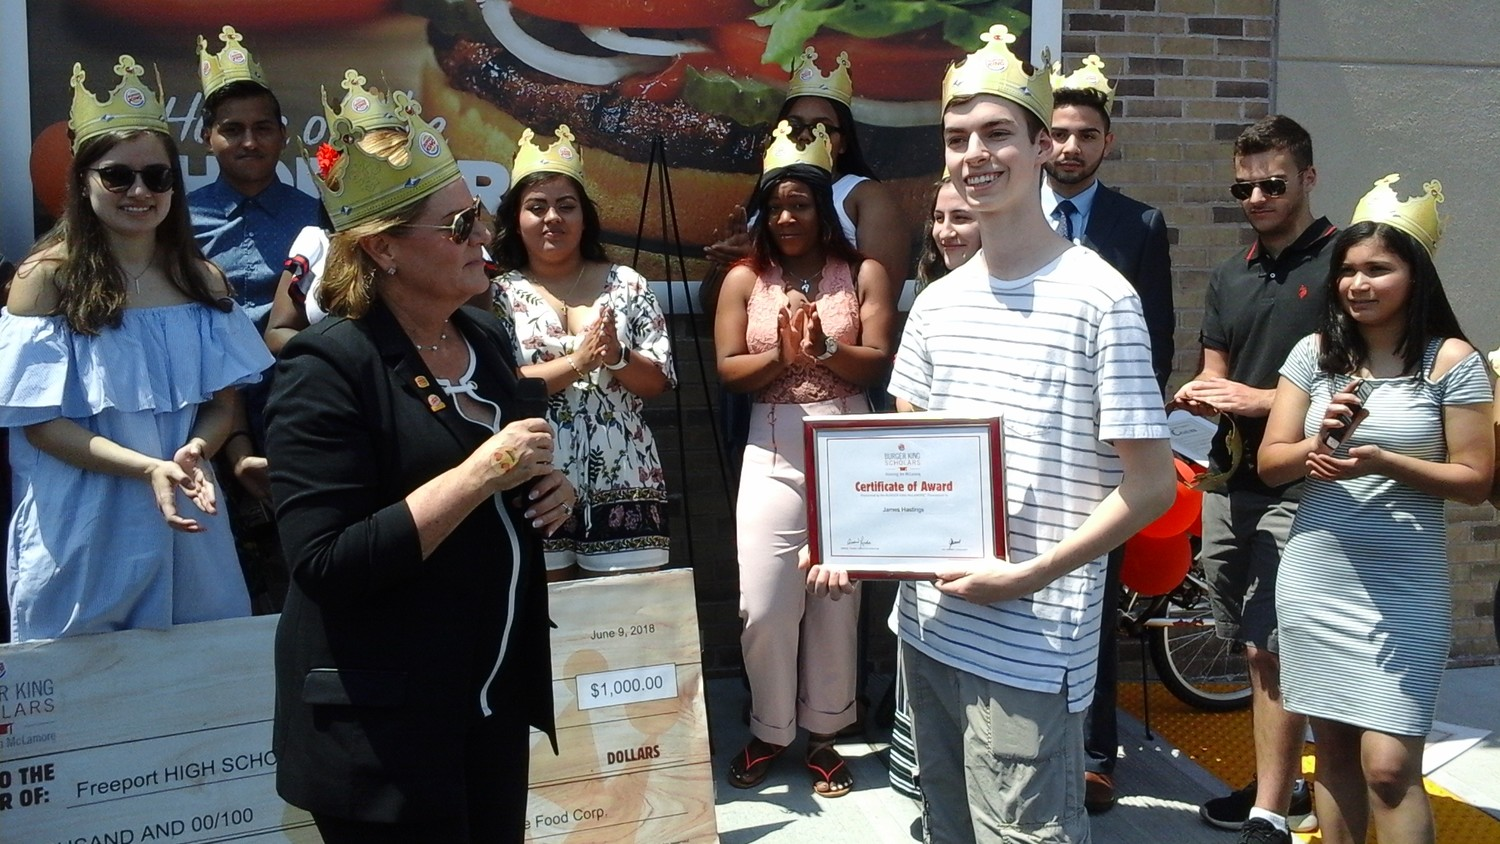 reeport High School Senior, James Hastings, right was presented with a certificate of recognition and a $1000 college scholarship by Debbie Sena, owner of the new Burger King